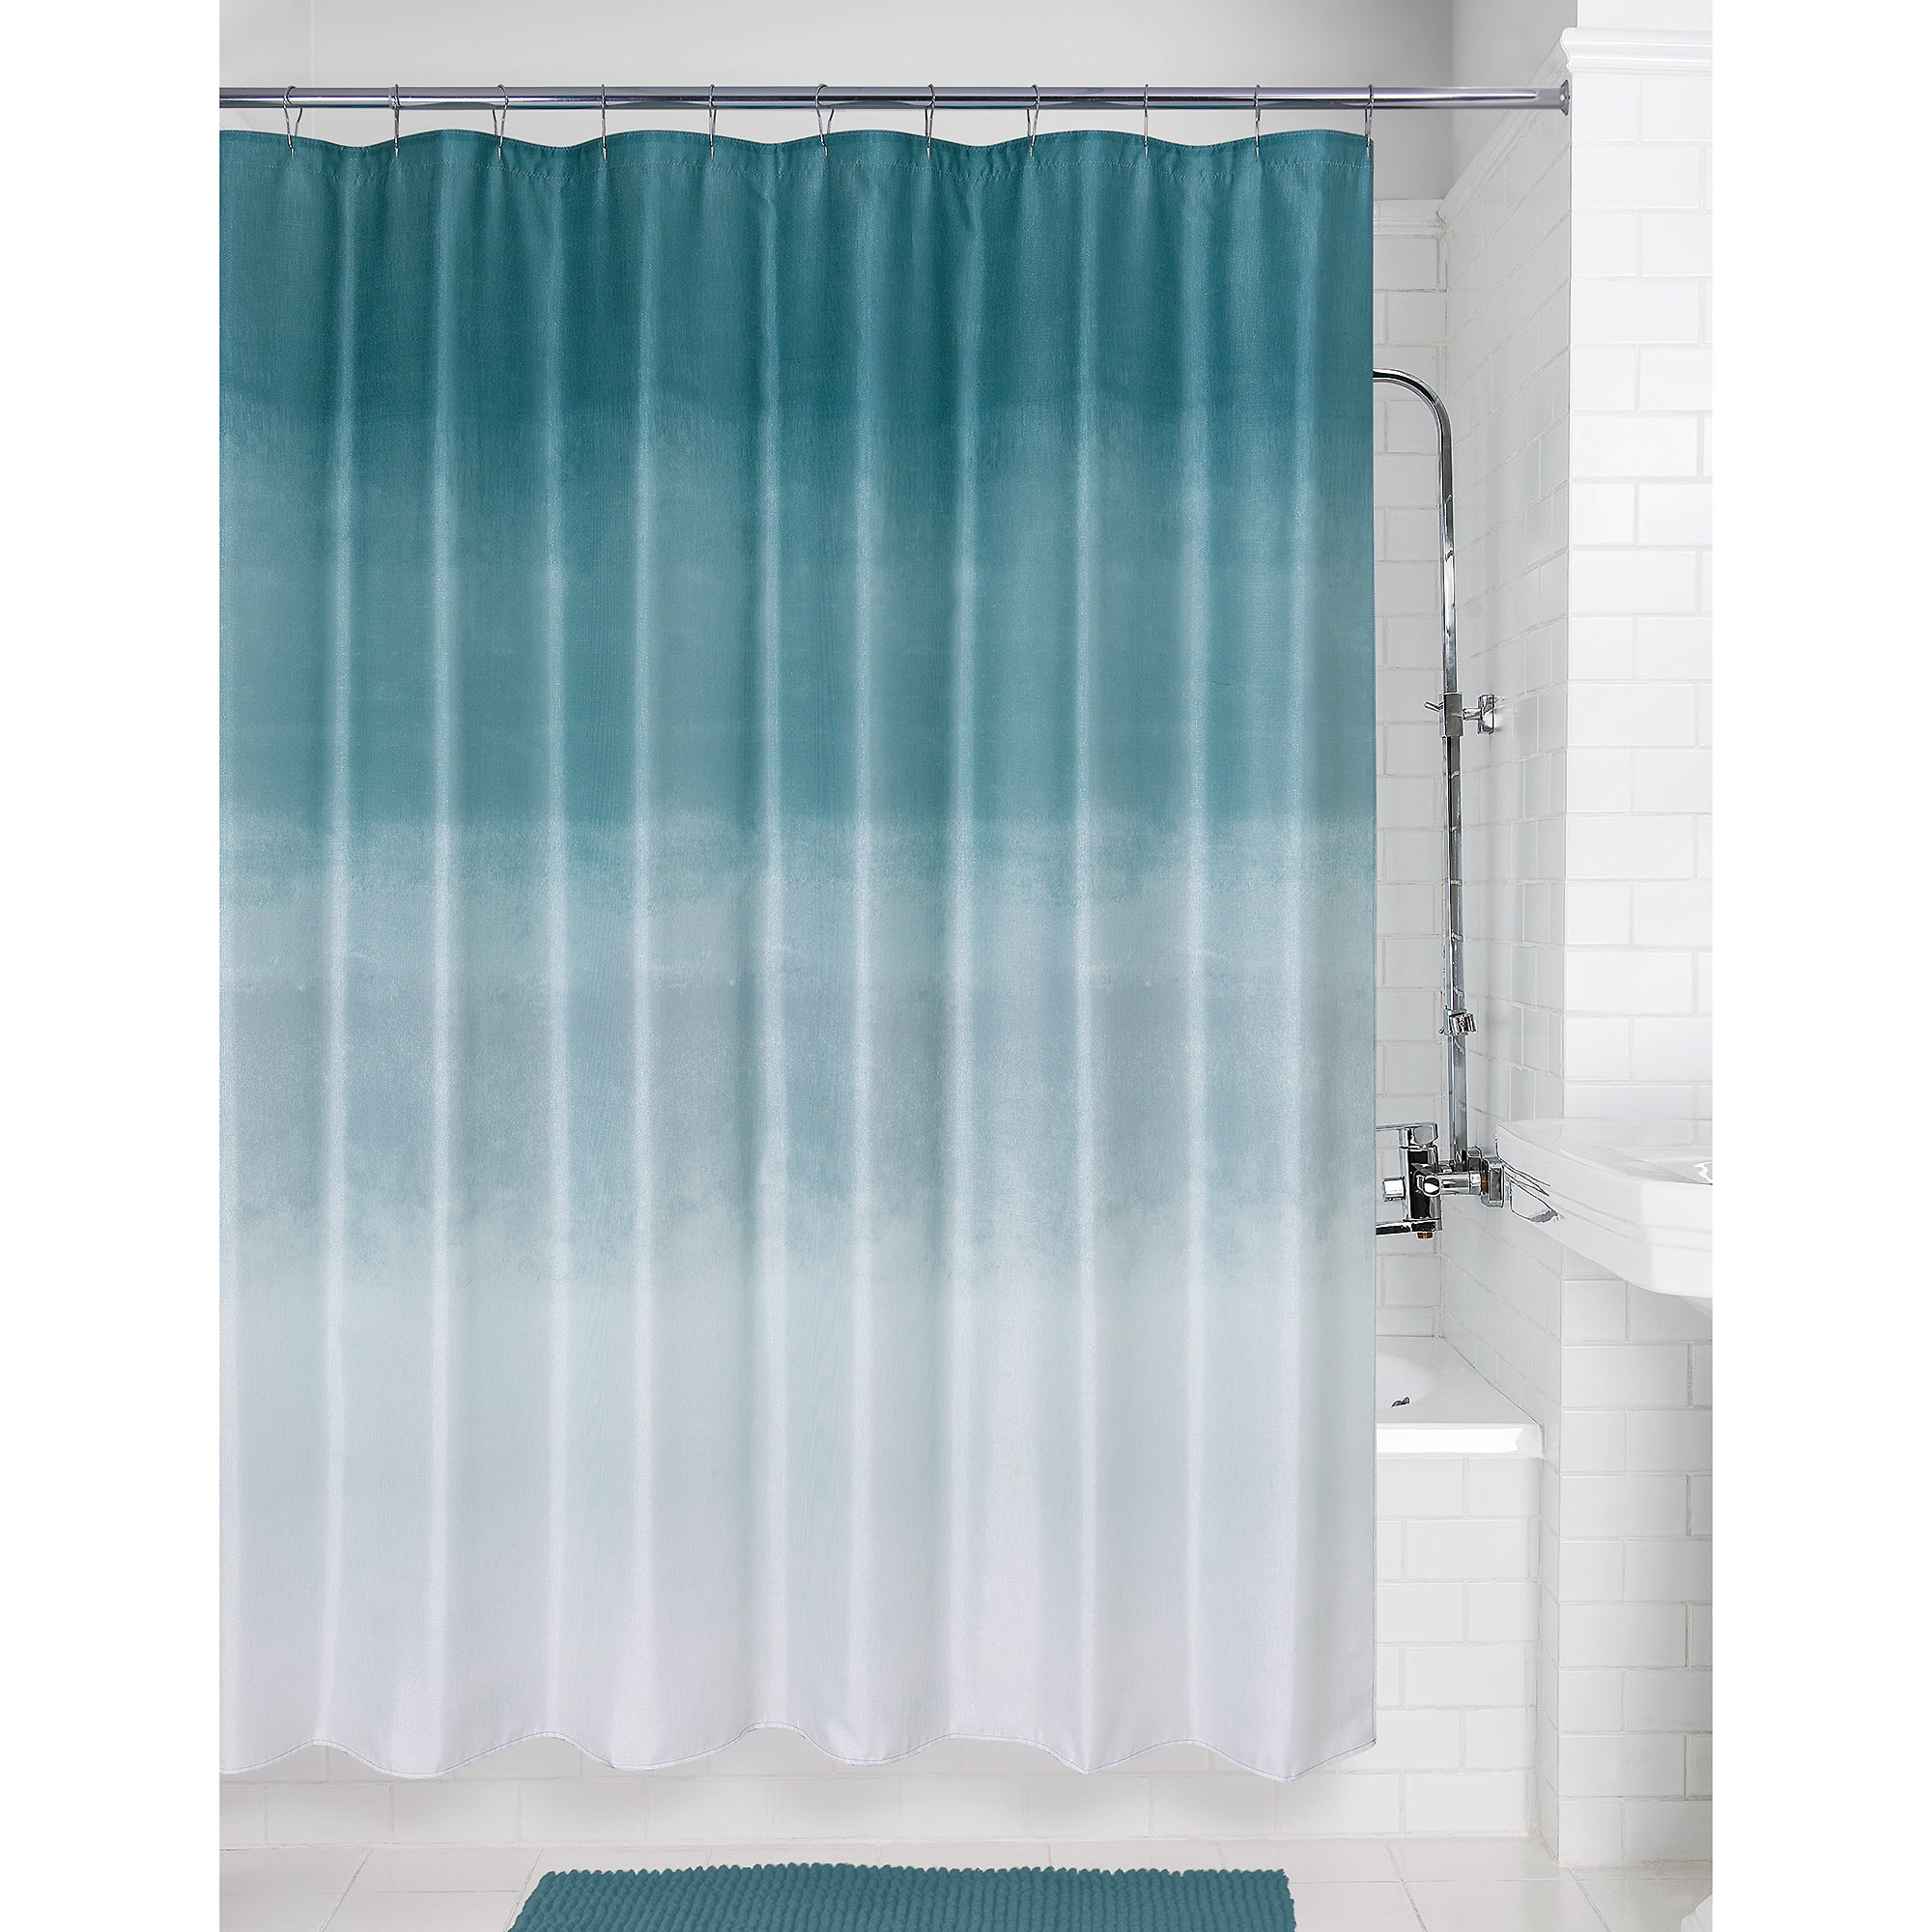 metallic ombre glimmer teal polyester printed fabric shower curtain by allure home creation 70 x 72